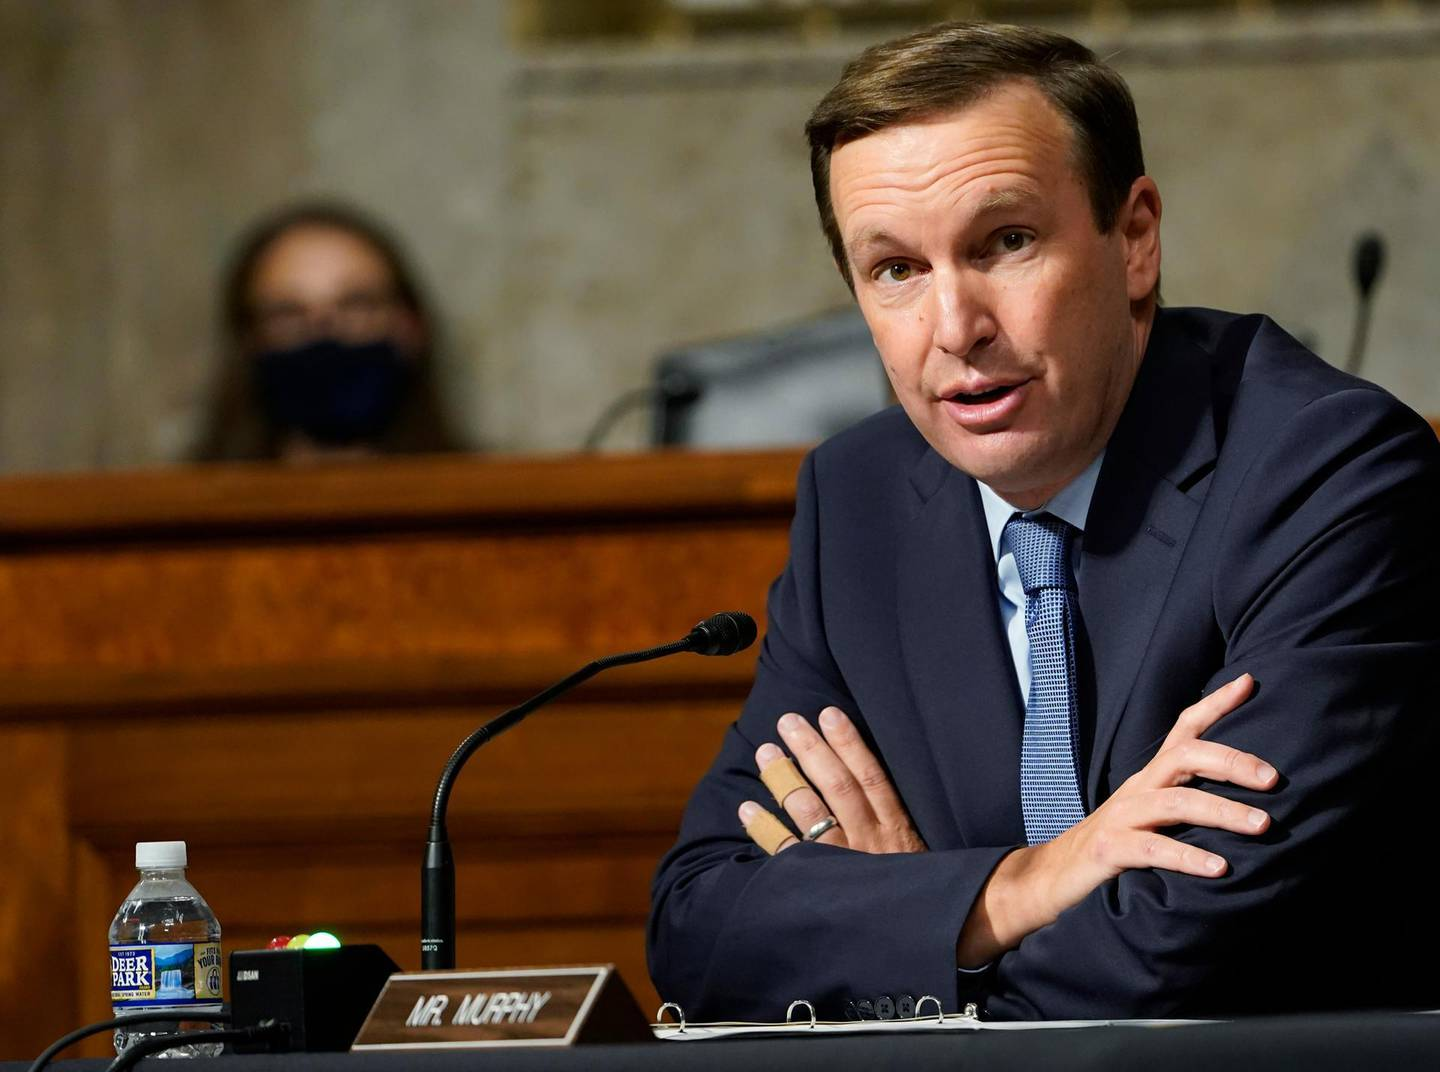 FILE- In this Sept. 24, 2020 file photo, Sen. Chris Murphy, D-Conn., speaks during a Senate Foreign Relations Committee hearing on Capitol Hill in Washington. Murphy and Connecticut Sen. Richard Blumenthal will be self-isolating after a member of Connecticut Gov. Ned Lamont's staff tested positive for COVID-19. Both tweeted on Saturday, Nov. 14, 2020, that they had not had close contact with the staffer but were taking the step out of an abundance of caution. (AP Photo/Susan Walsh, Pool, File)